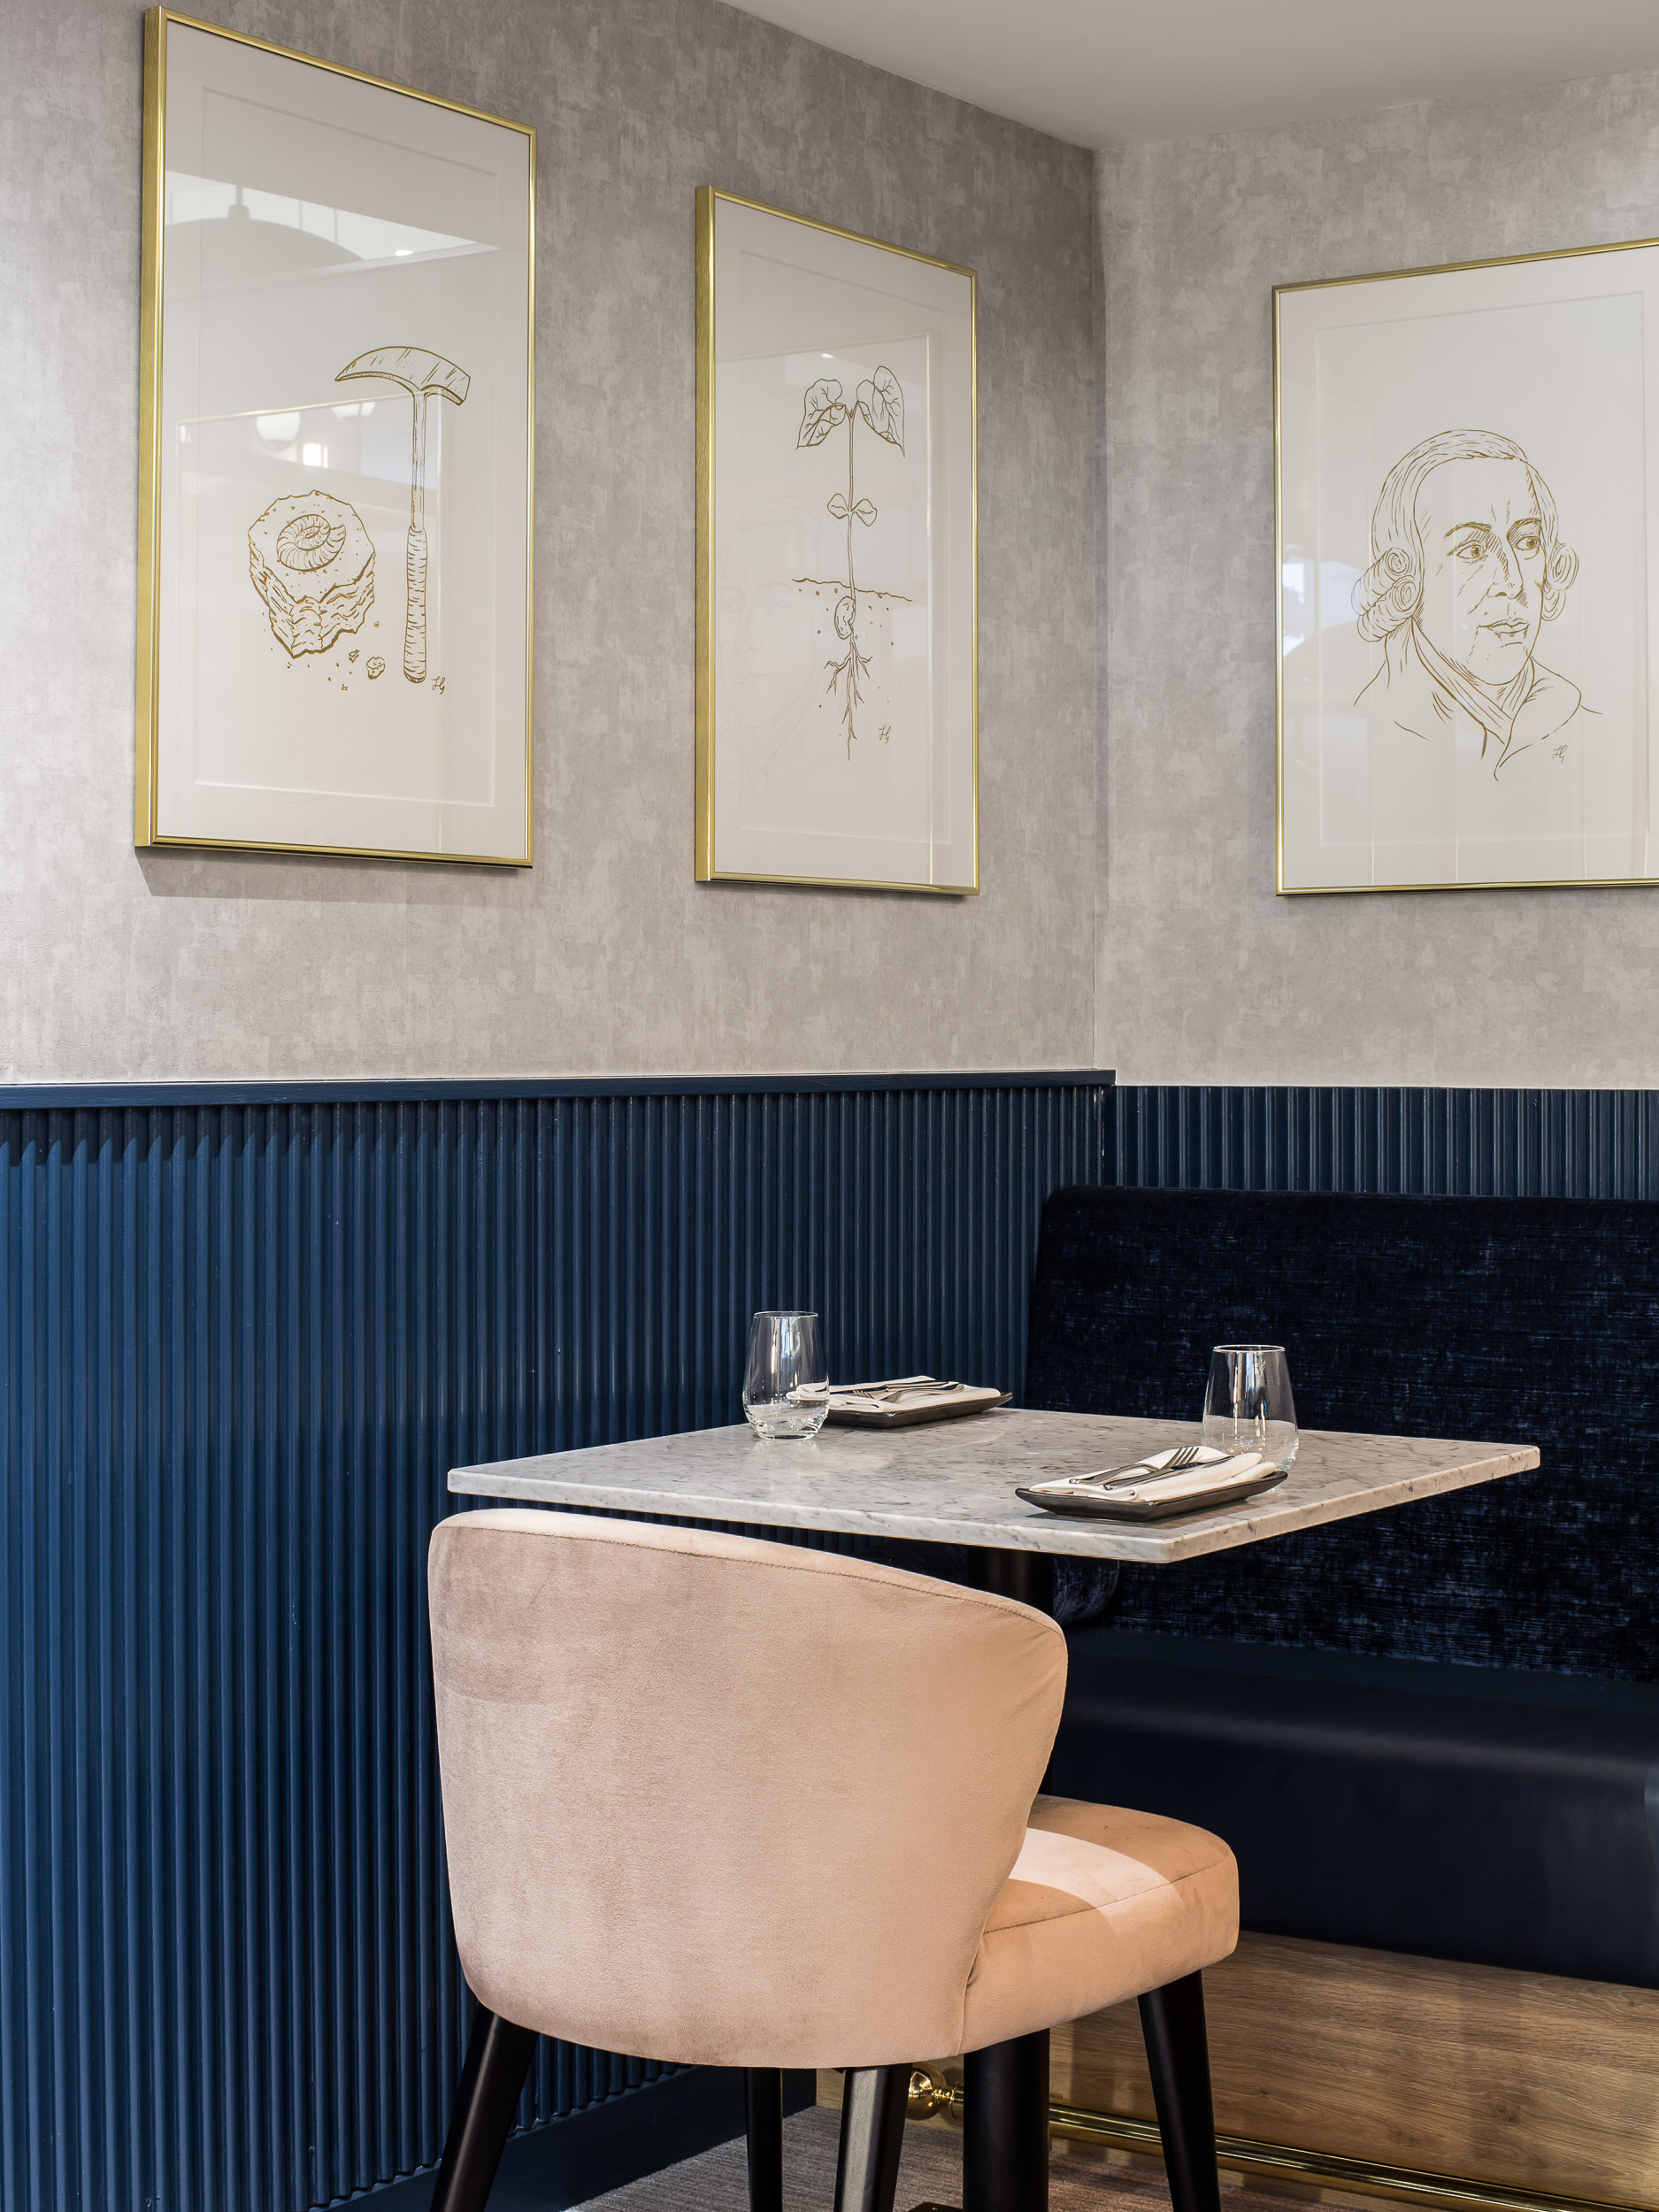 The Oyster Club interiors